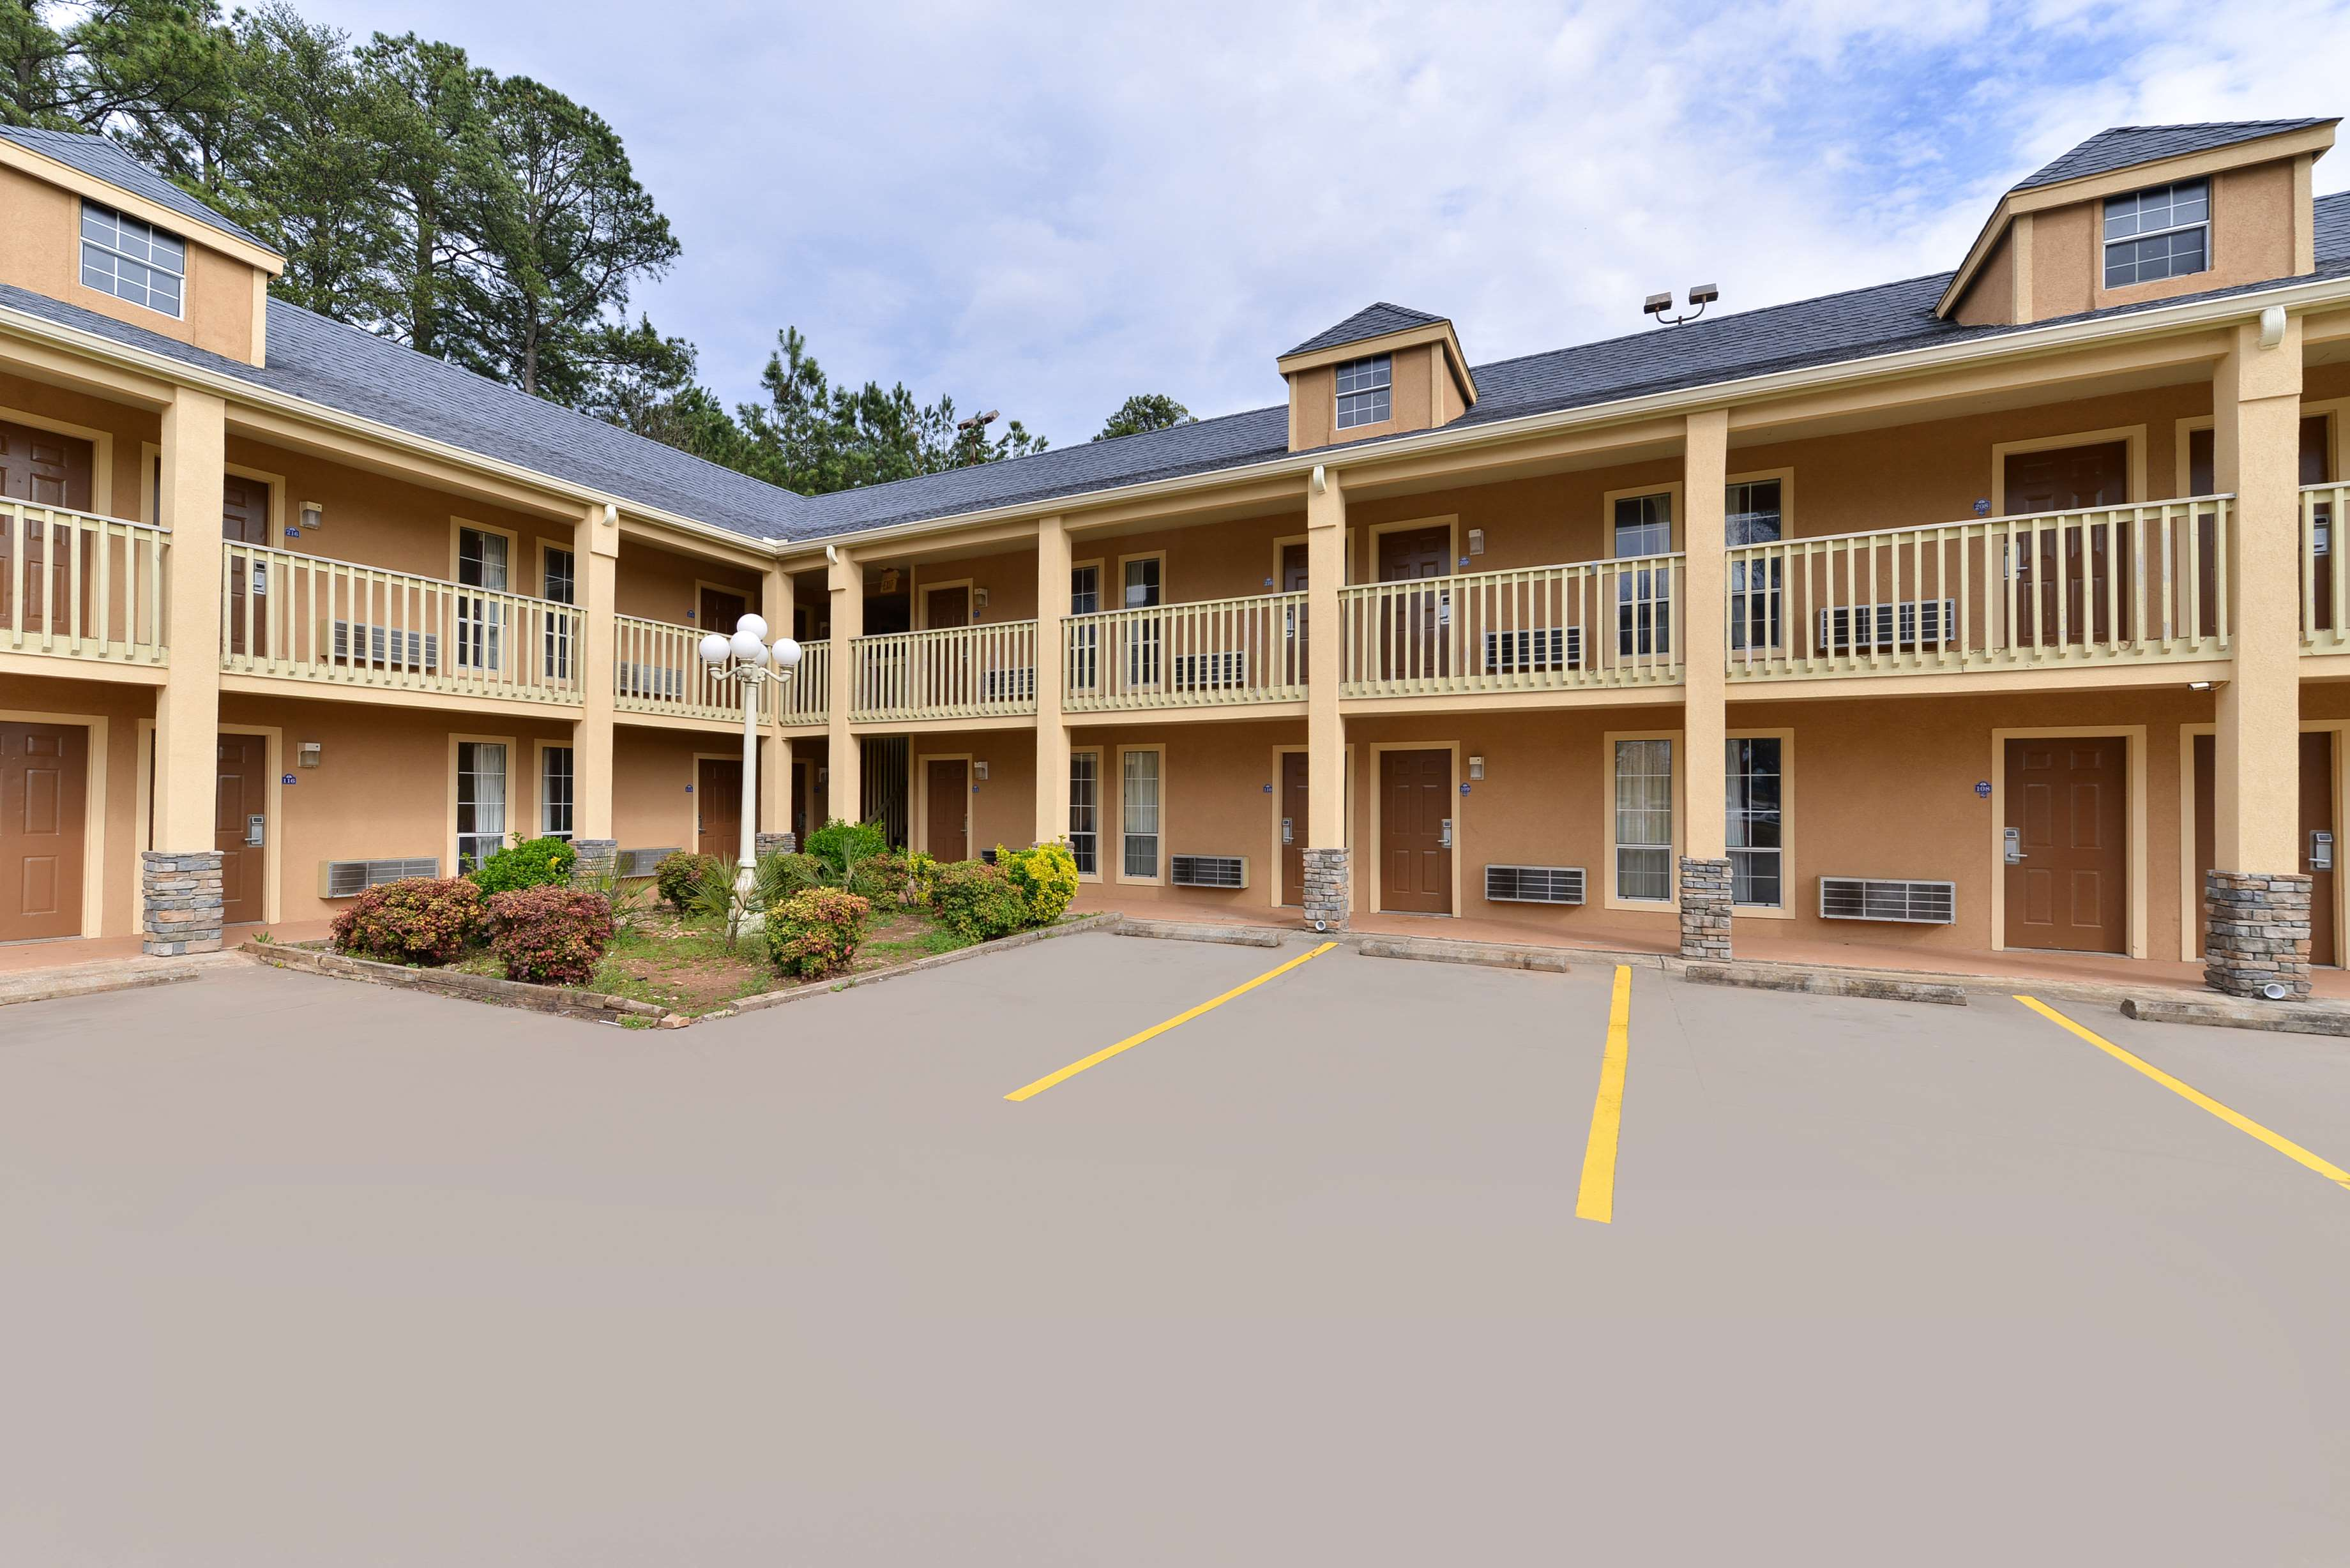 Hotels And Motels In Anderson Sc